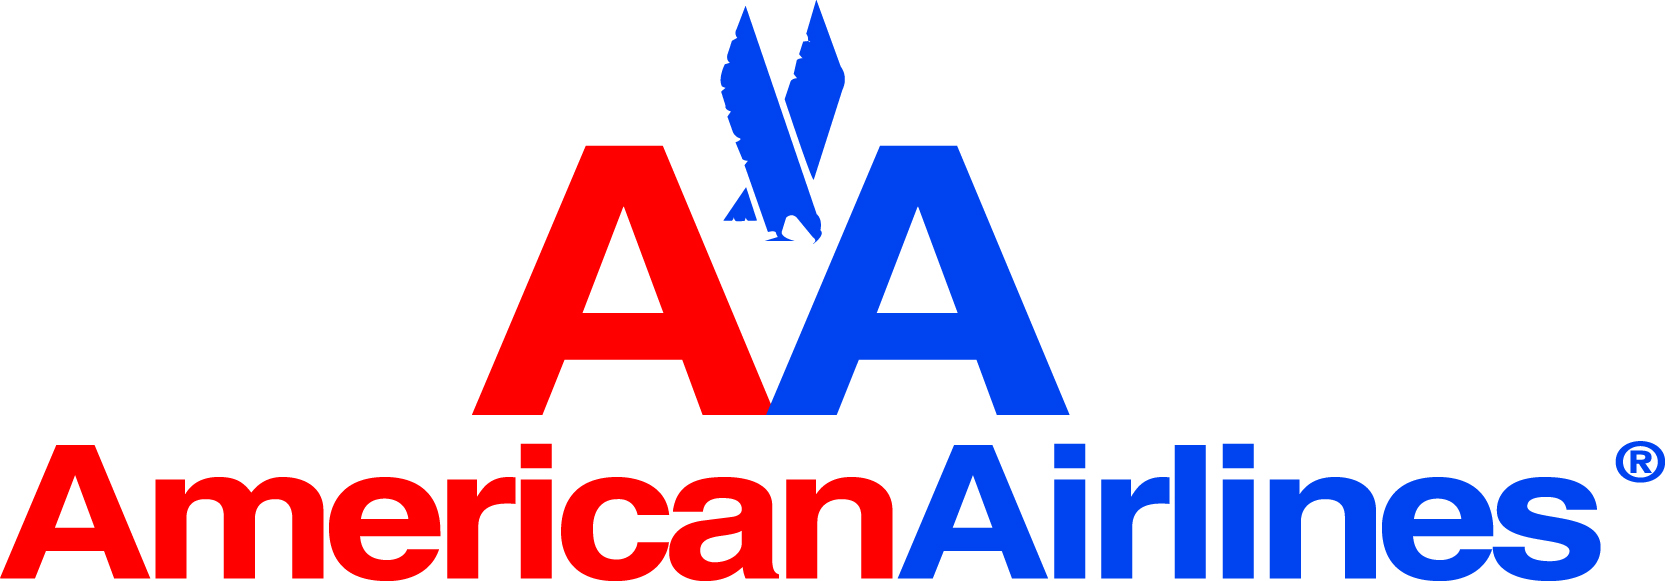 Airlines Logo Png Airlines Logo Png